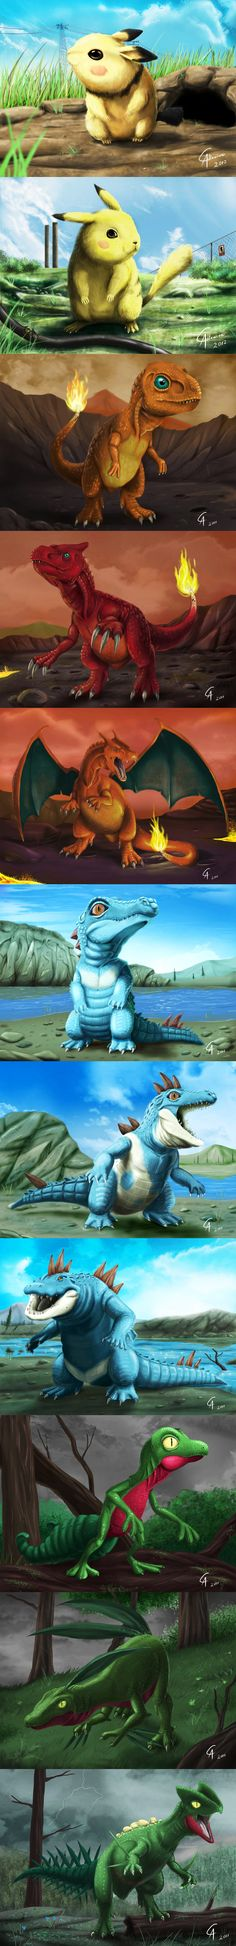 Realistic Pokemon by Camus Altamirano